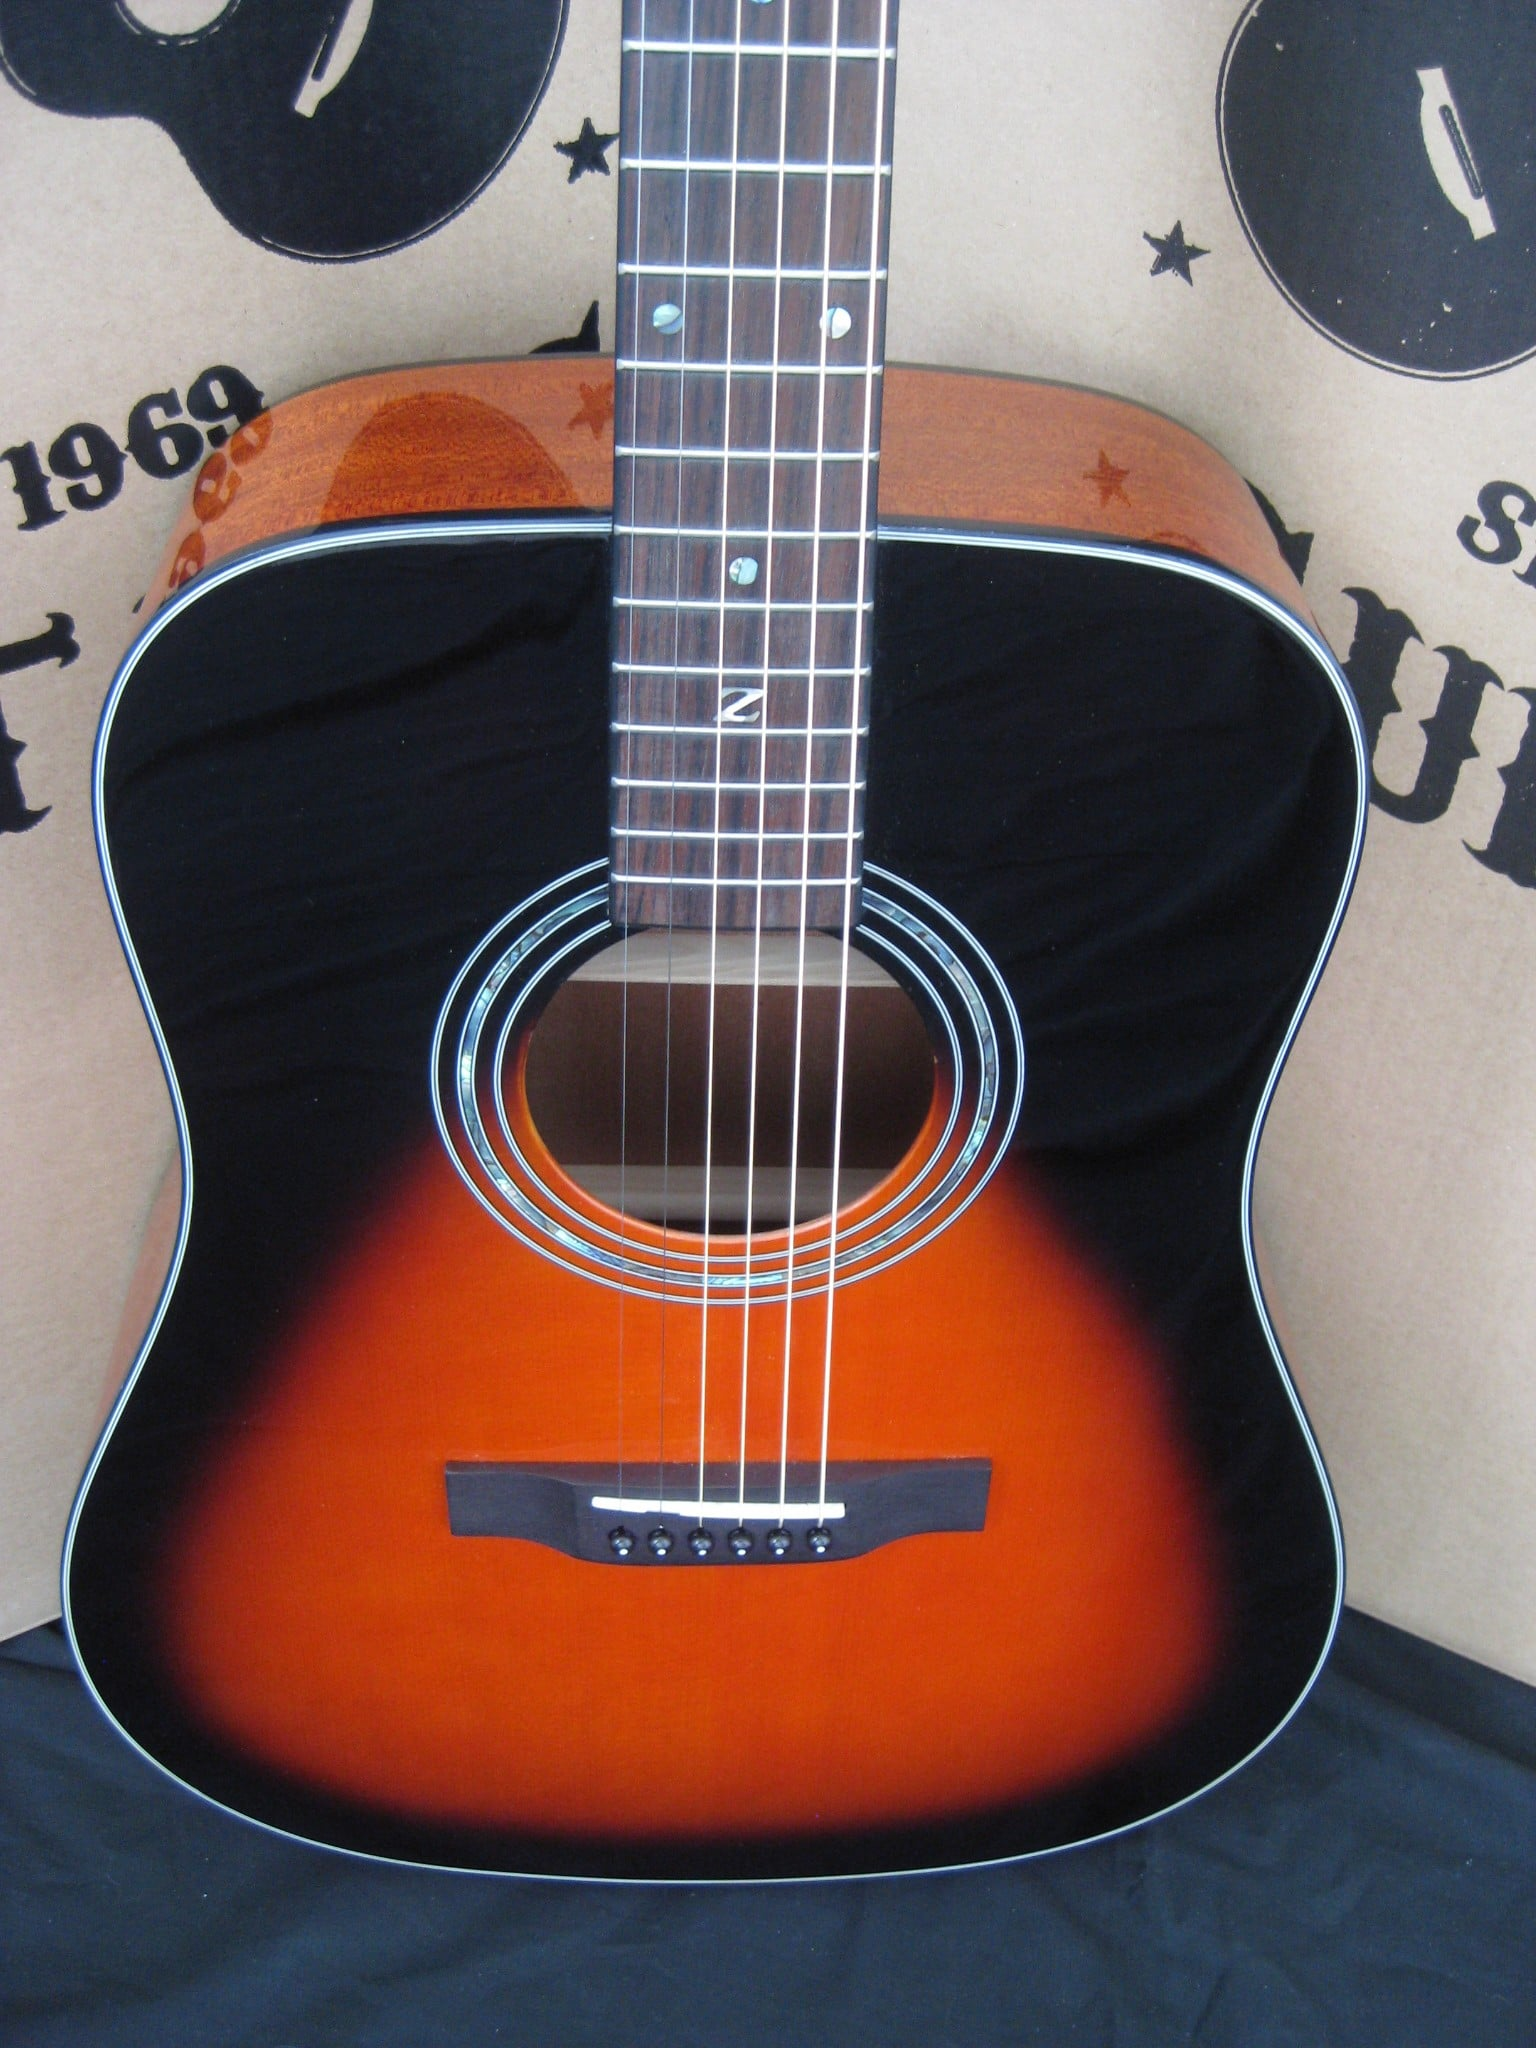 #1780 ZAD20LH Vintage Sunburst LEFT HAND Acoustic Discount Guitar